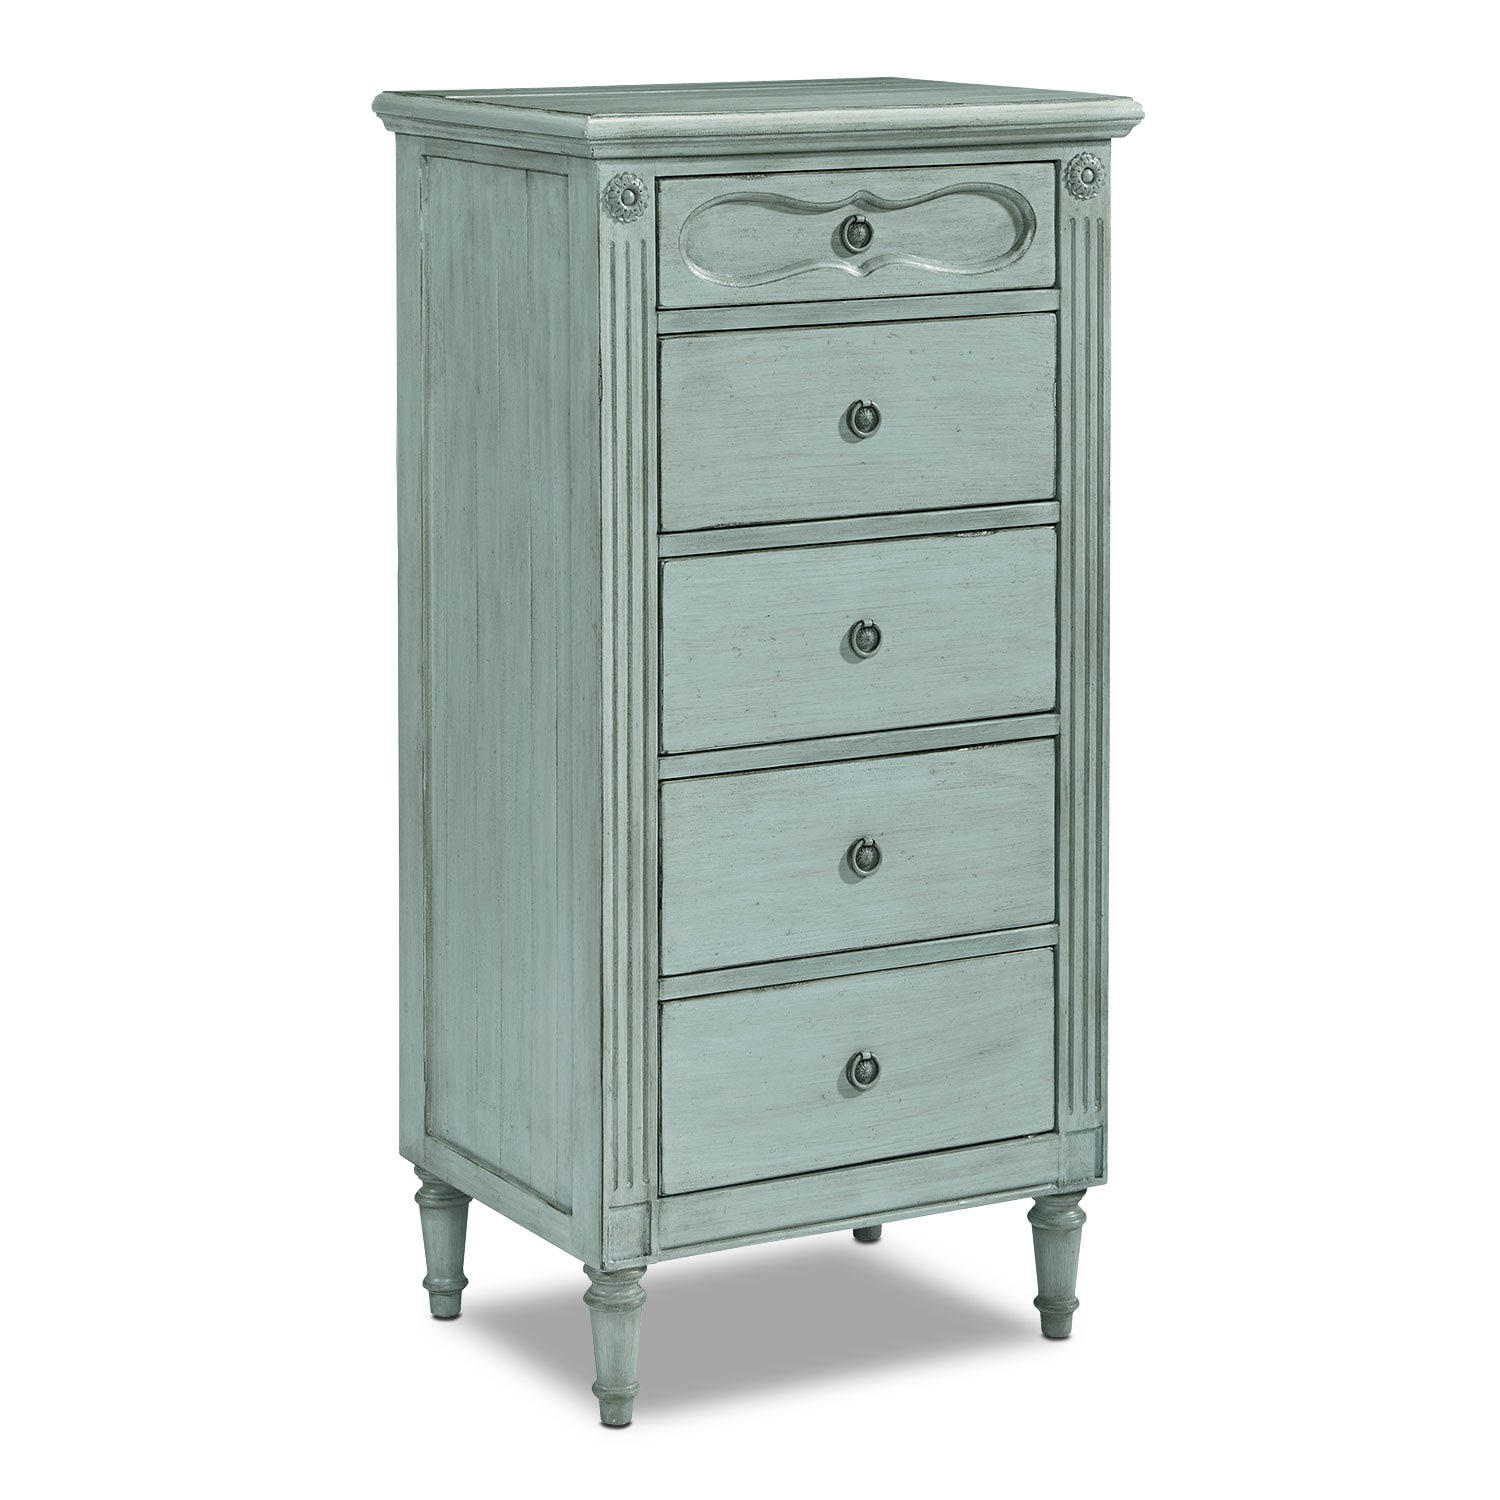 Bedroom Furniture - Cameo Demi-Chest - French Blue